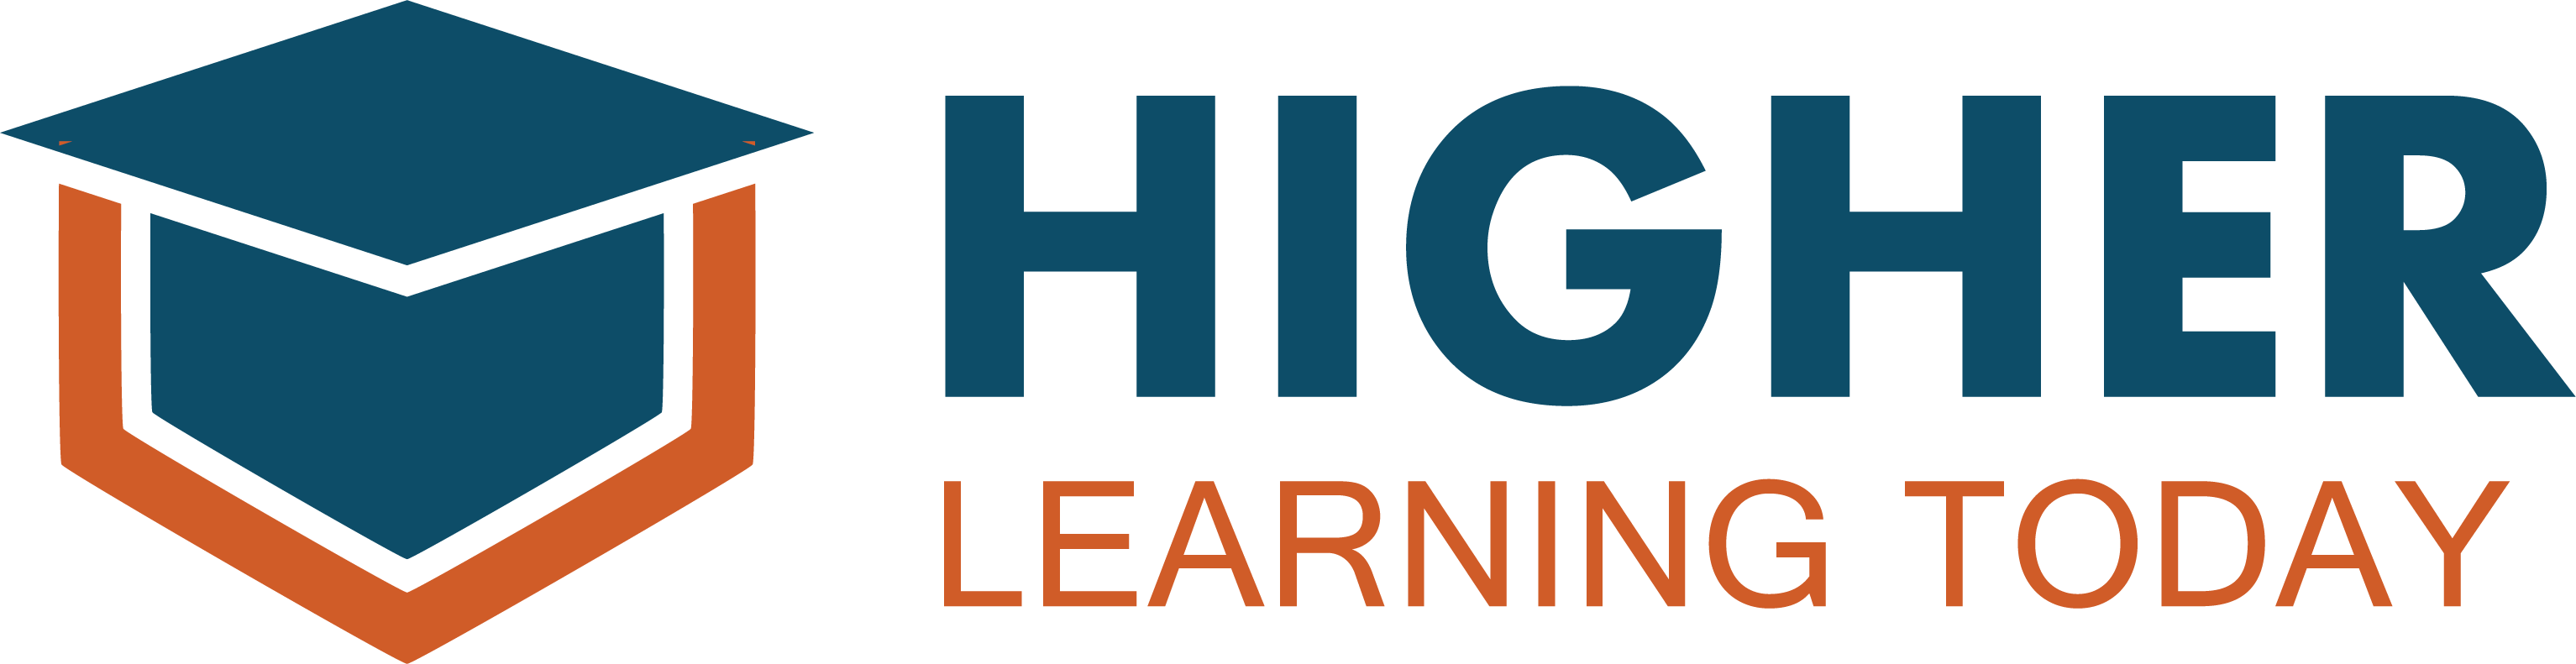 Higher Learning Today Logo